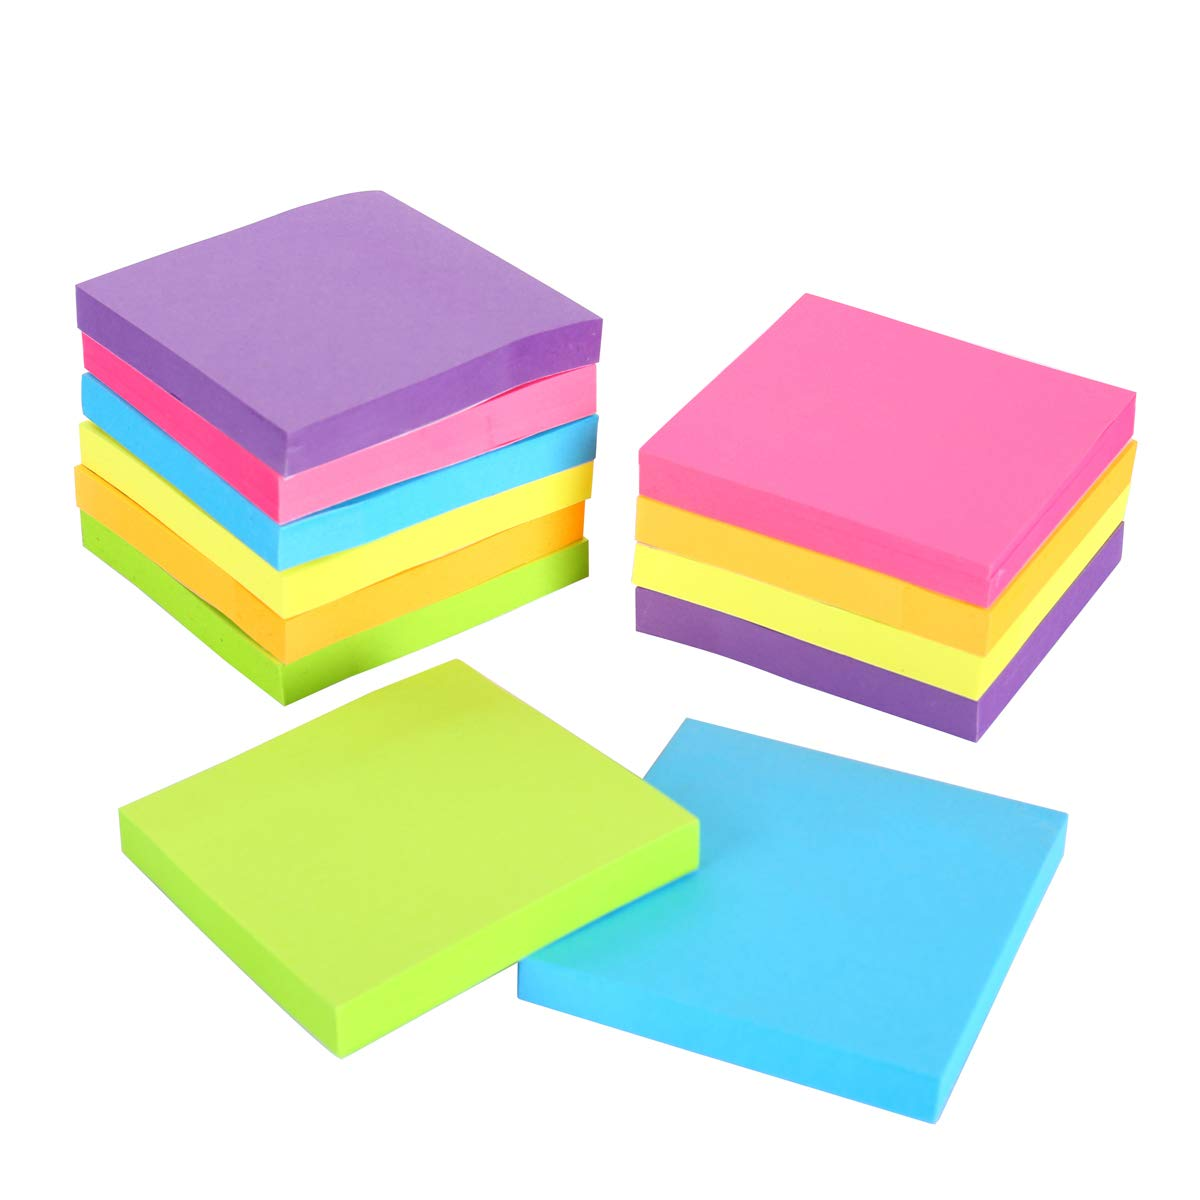 Sticky Notes, 3 in x 3 in, 12 Pads/Pack,100 Sheets/Pad, 6 Bright Colors Self-Stick Notes for Home,Office, School, Easy Post.